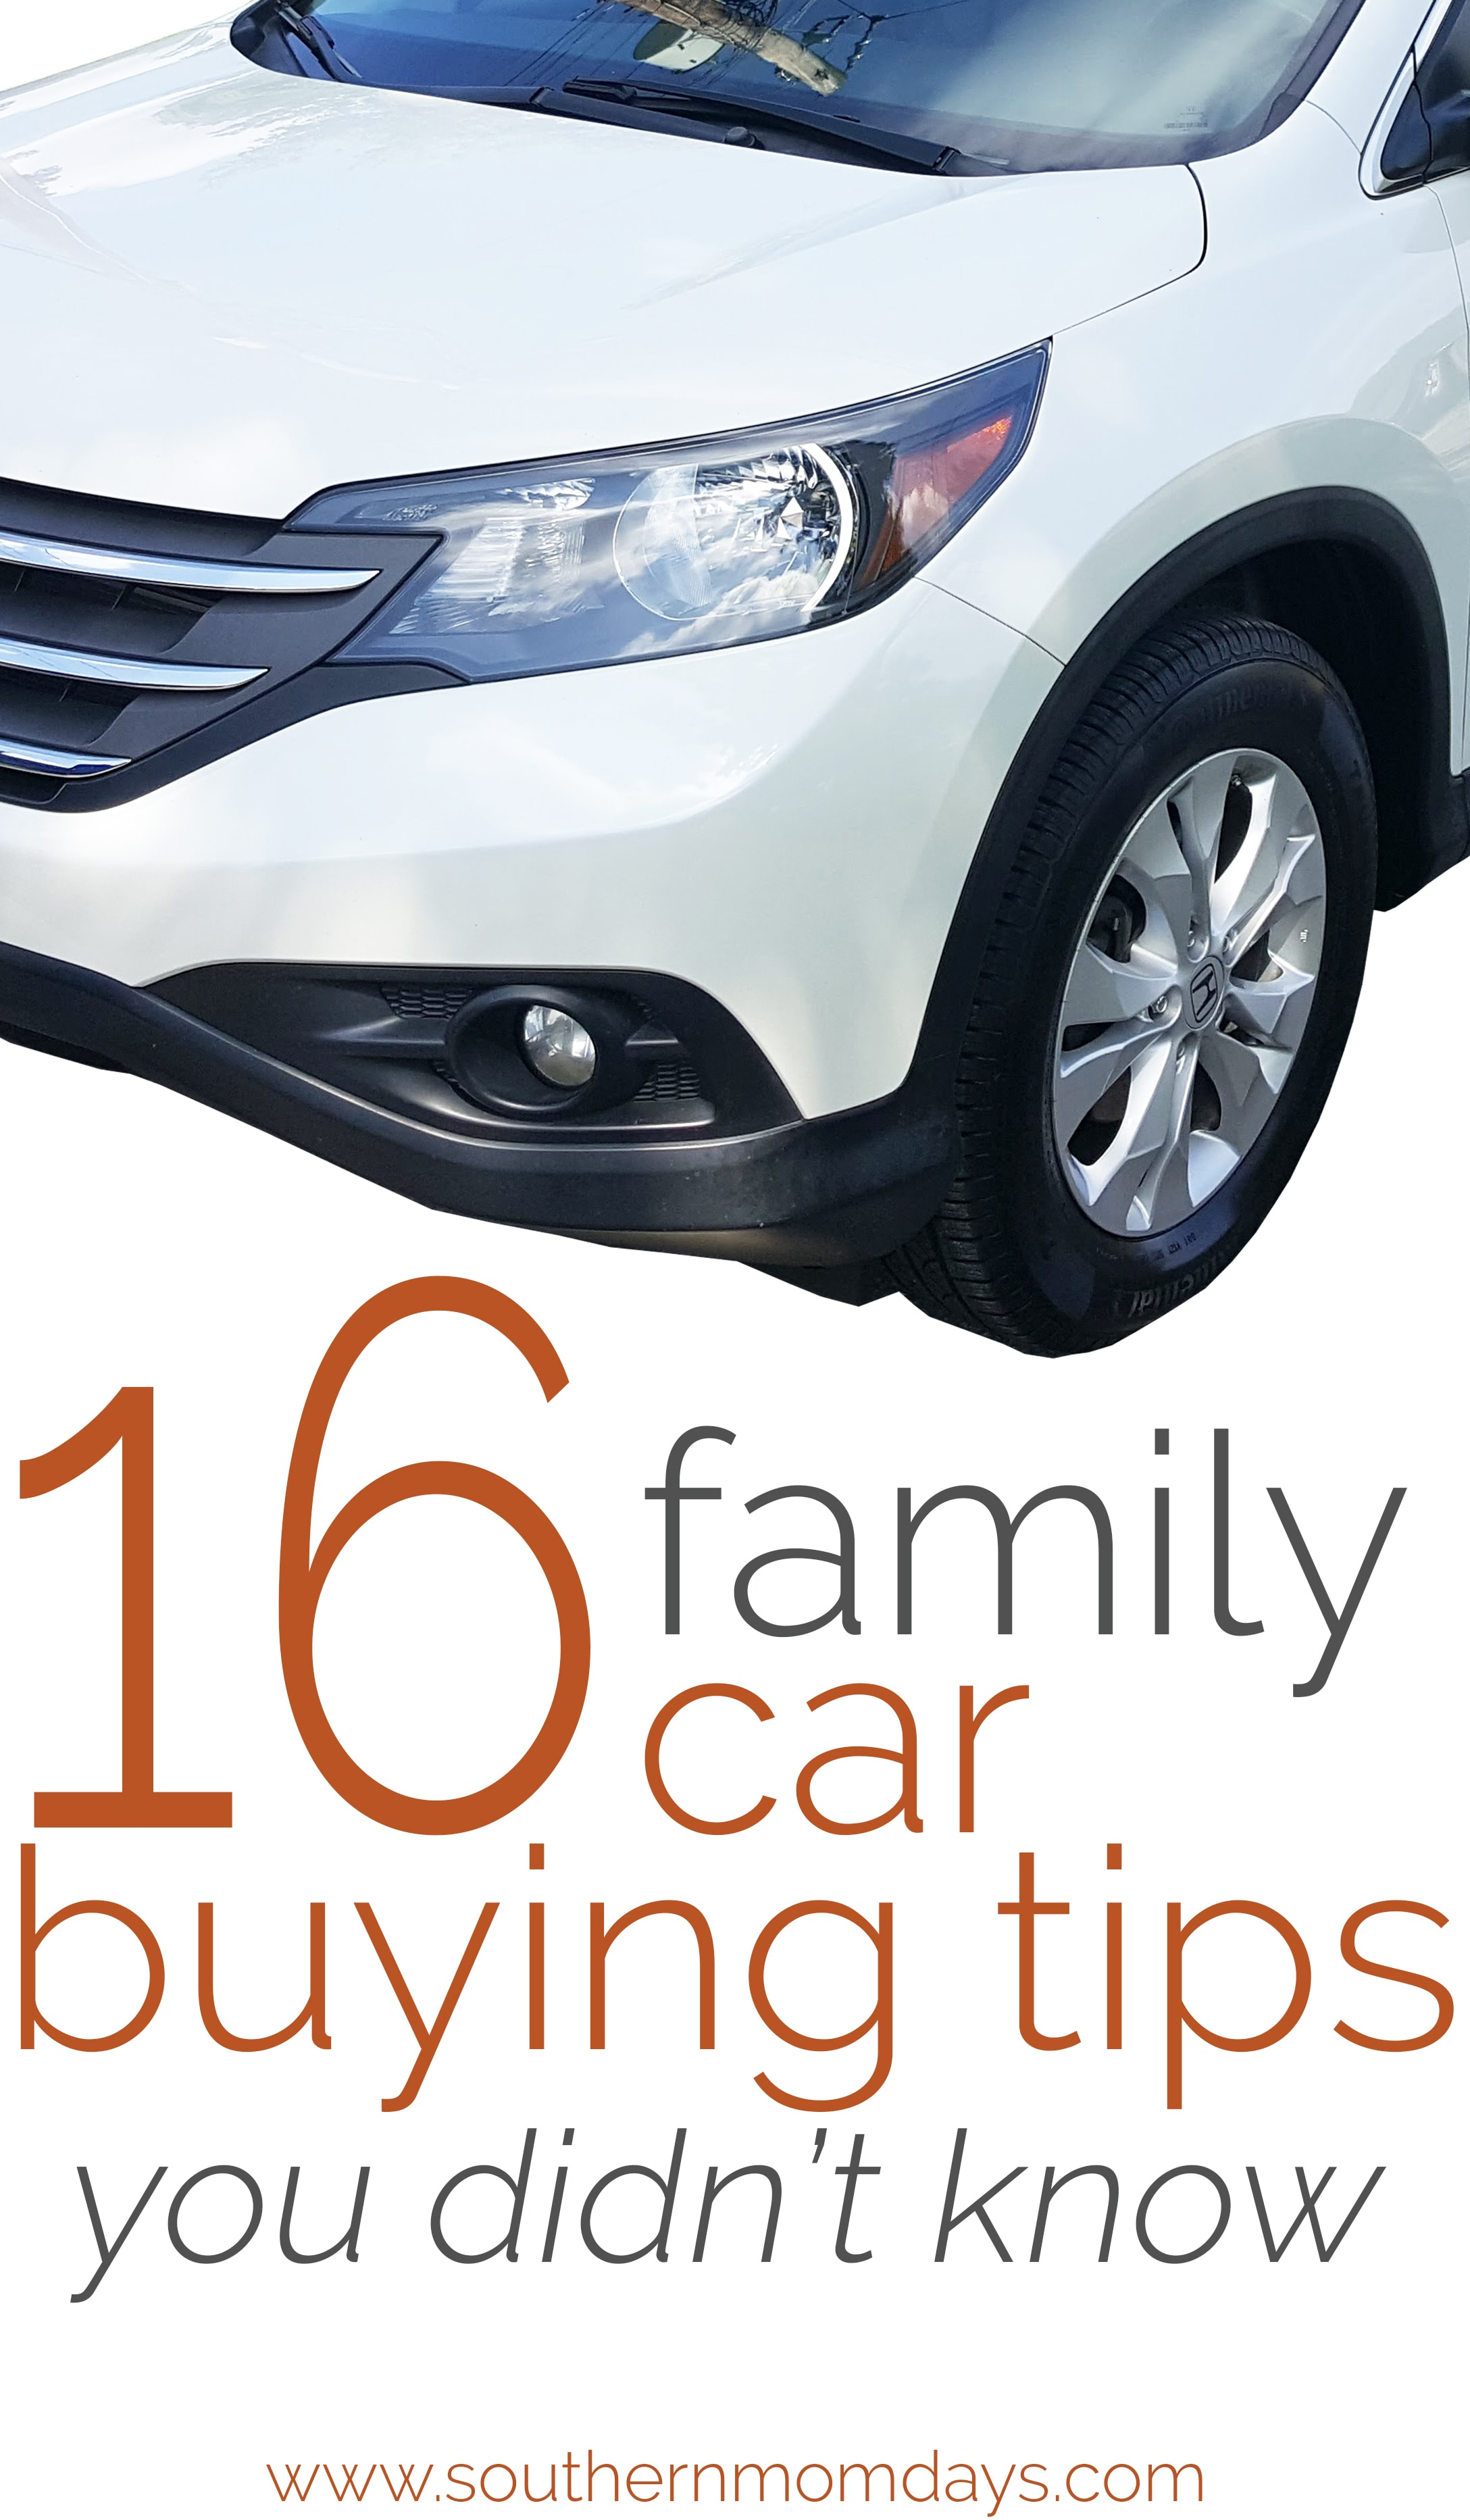 16 Family Car Buying Tips You Didn't Know, featured on the Southern Momdays blog